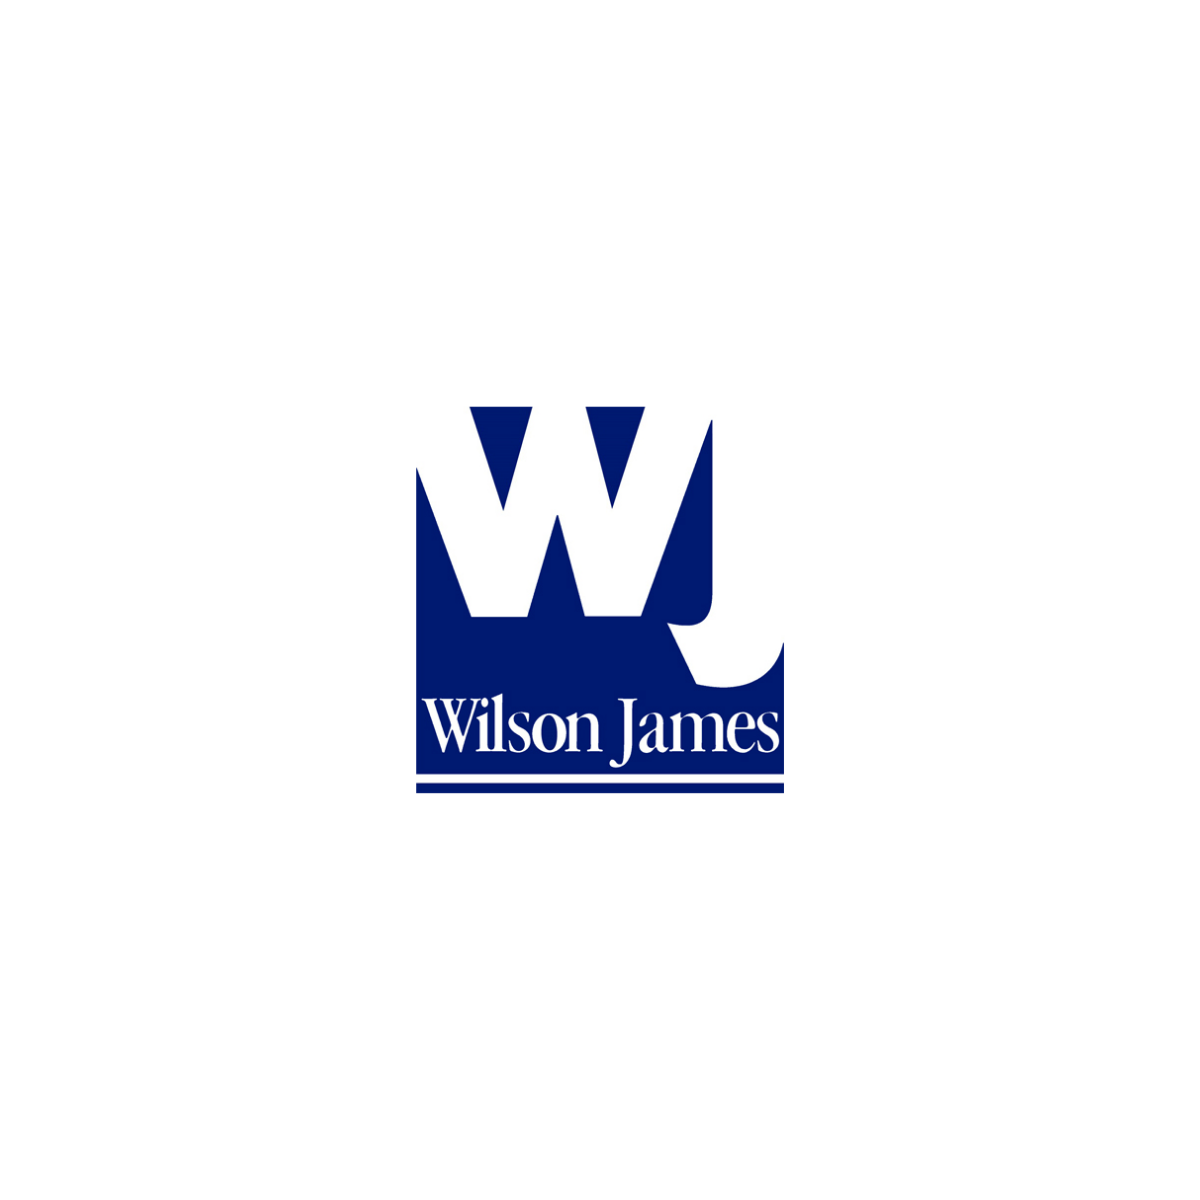 Wilson James Ltd logo